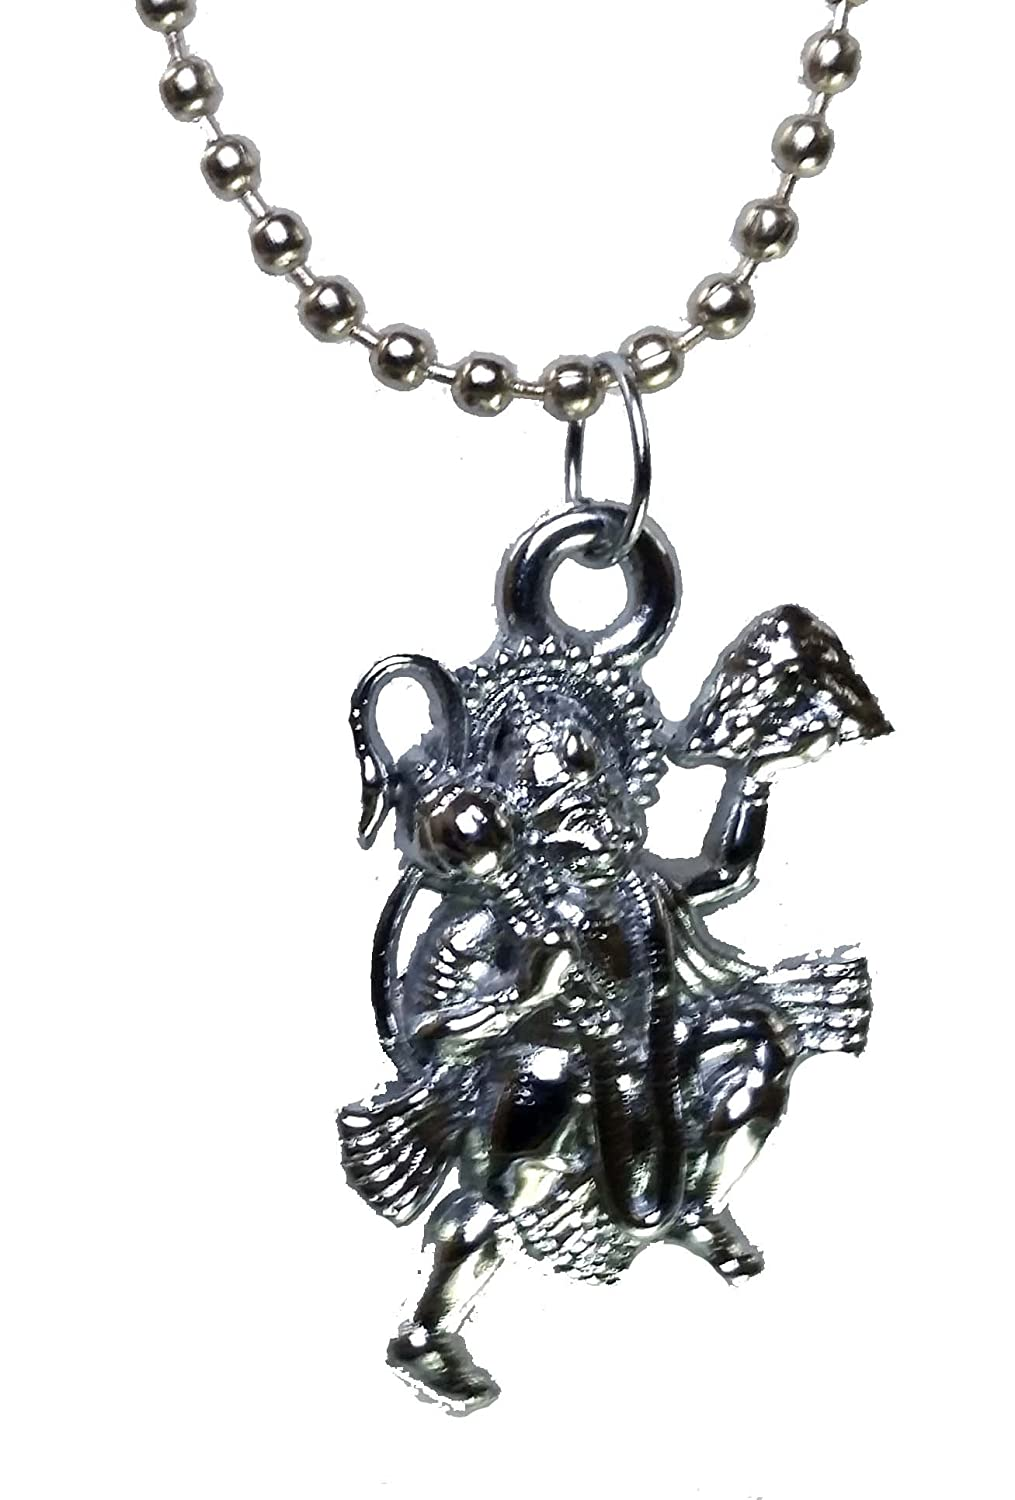 gift pin present unique fight locket bowel s lovely charms representing autism handmade against a necklace beautiful lockets meaning angel lady jewellery